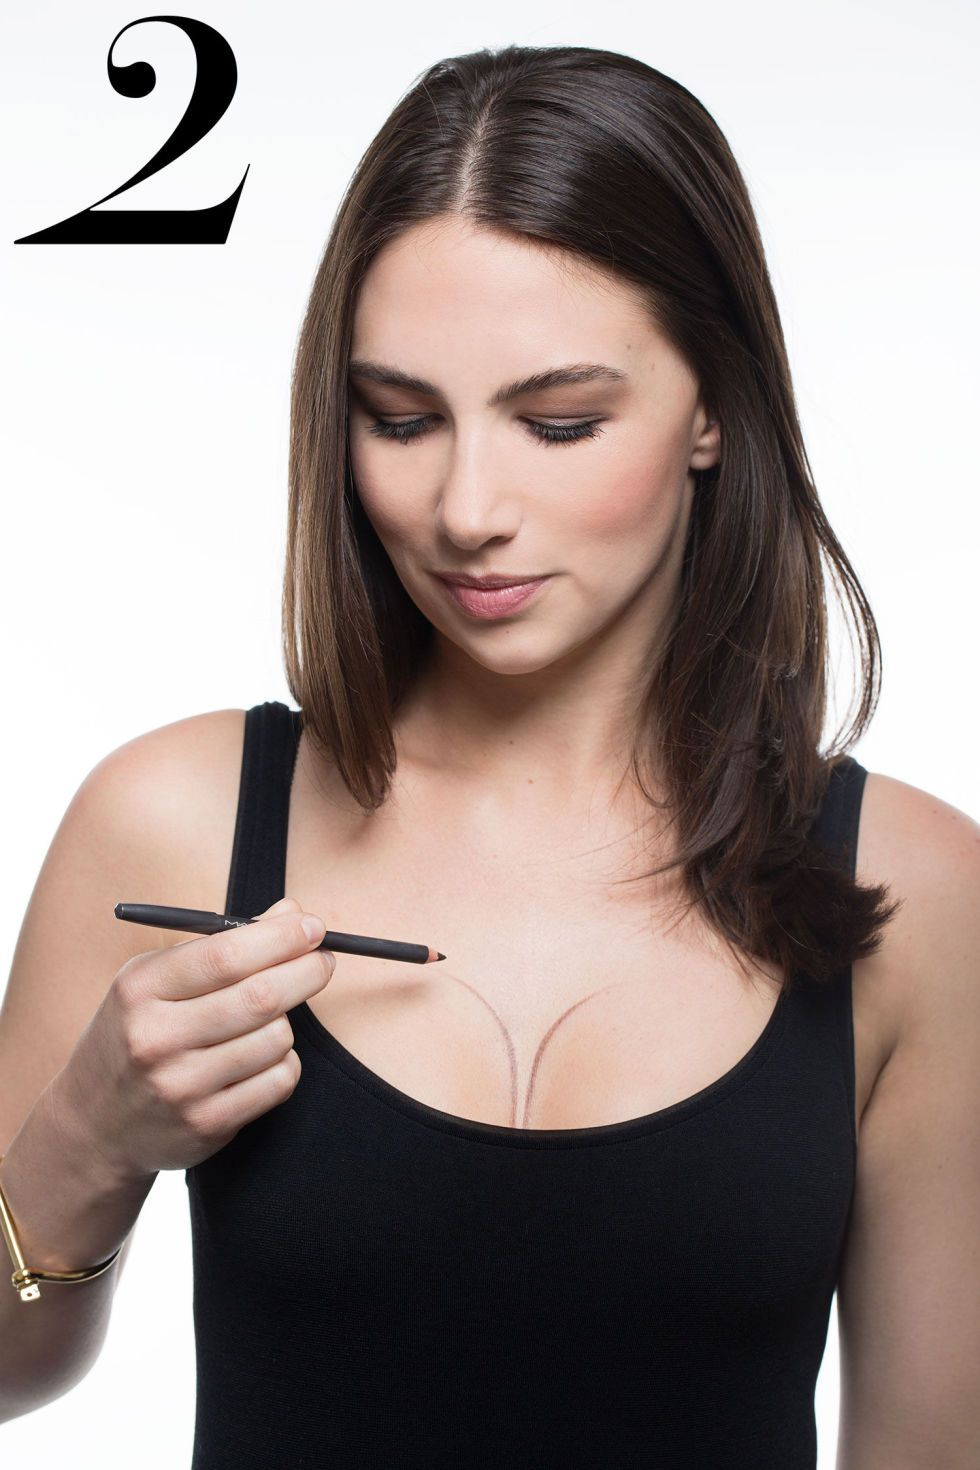 4 easy steps to enhancing and contouring your cleavage for a night out: